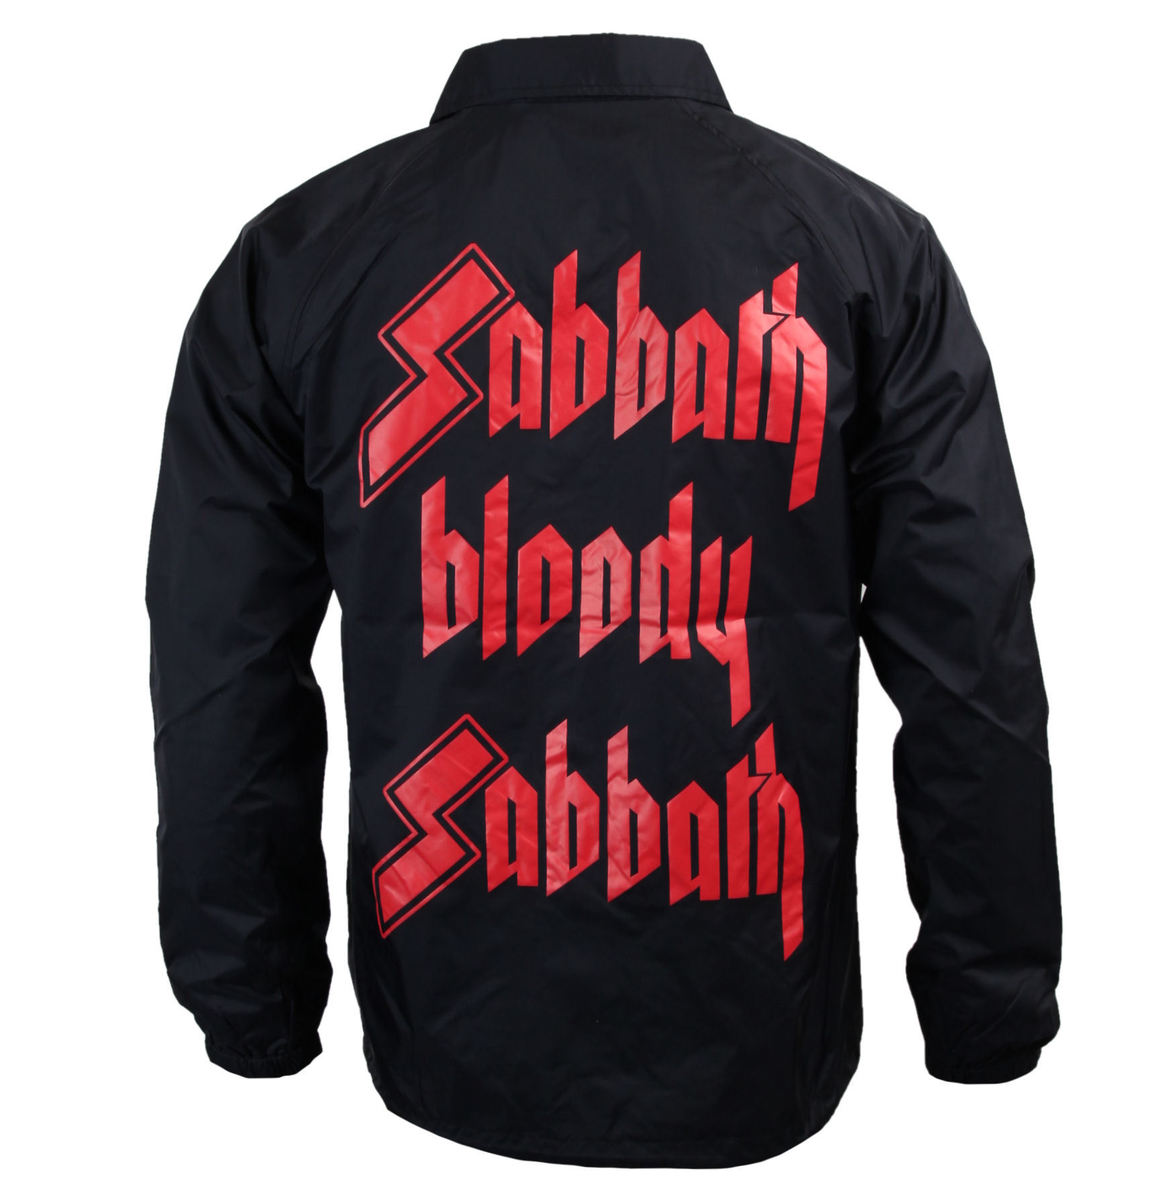 bunda Black Sabbath - Bloody - BRAVADO - 34192003